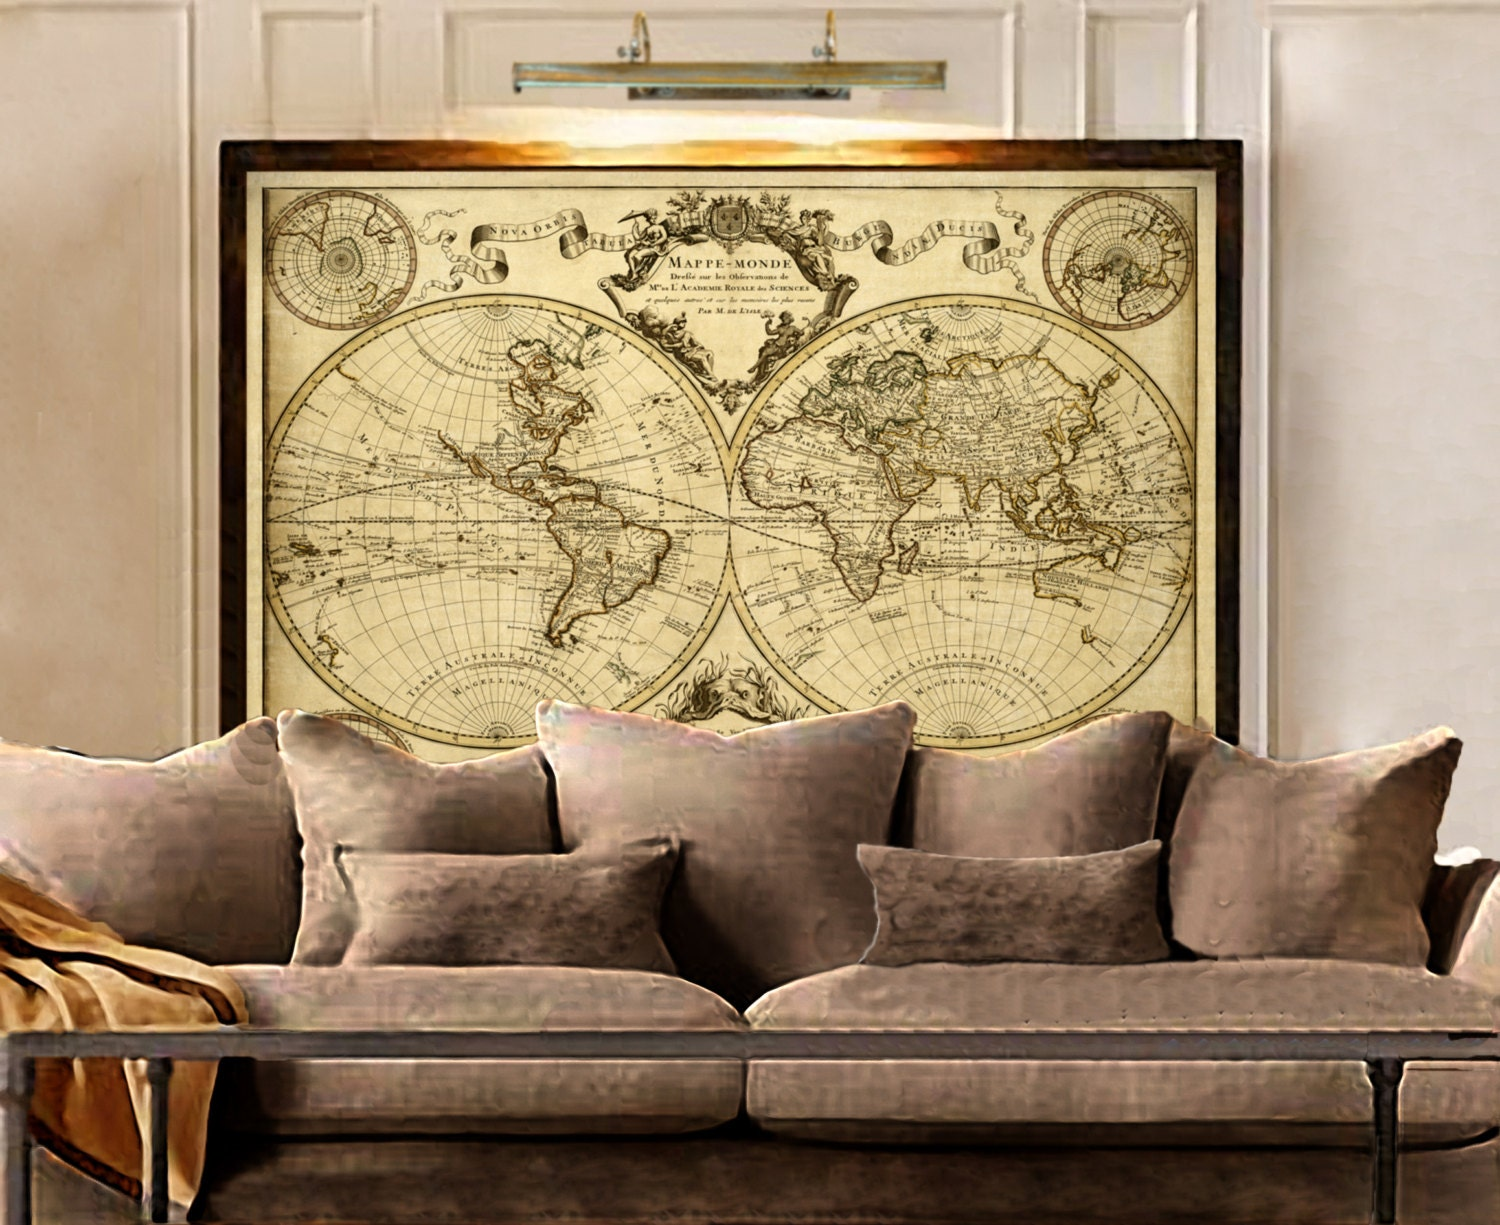 L 39 isle 39 s 1720 old world map historic map antique style for Antique home decoration